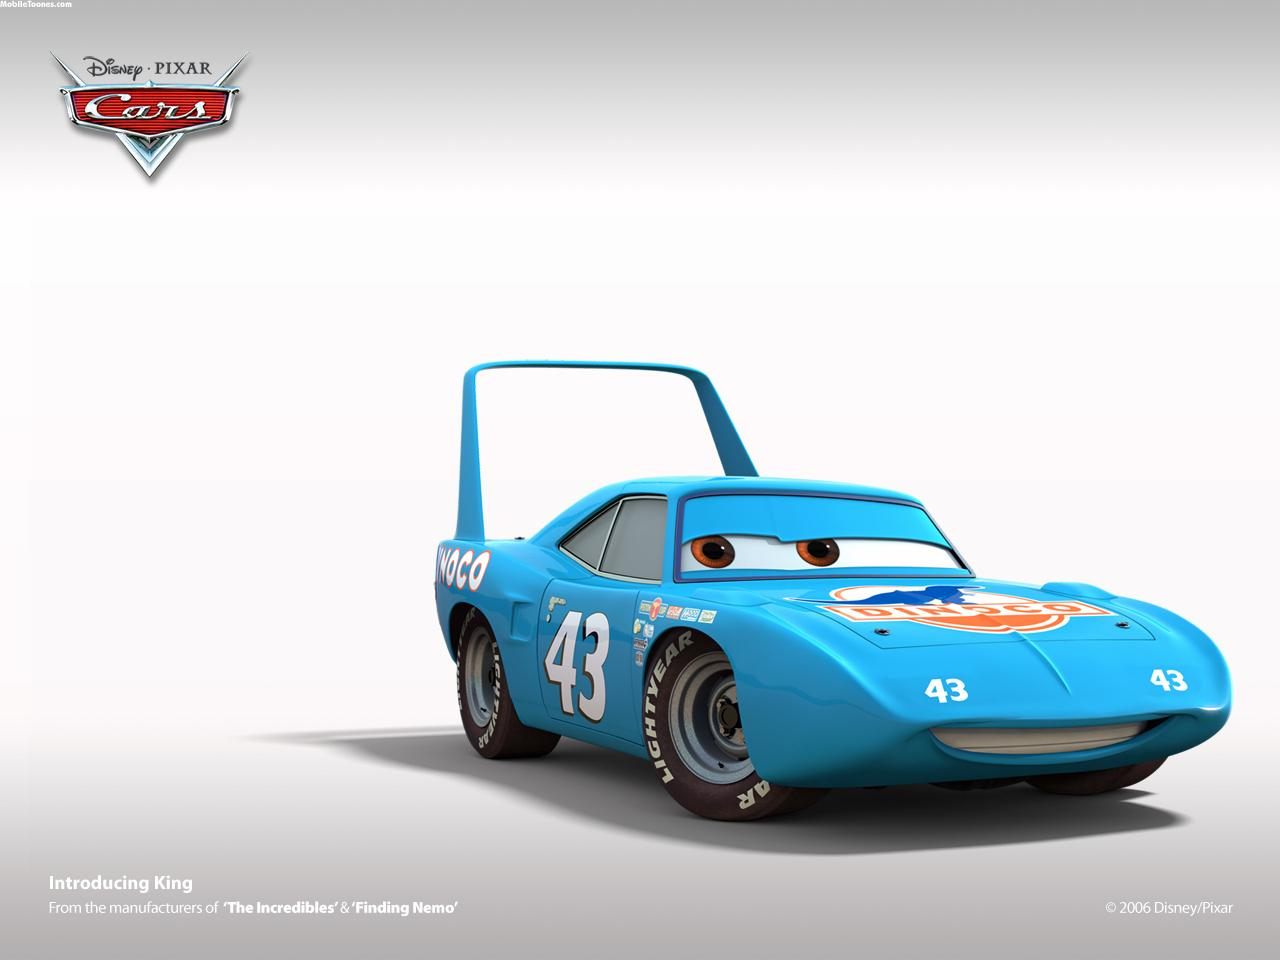 Disney Cars Wallpapers Free Download: Download Cars The Movie Mobile Wallpaper